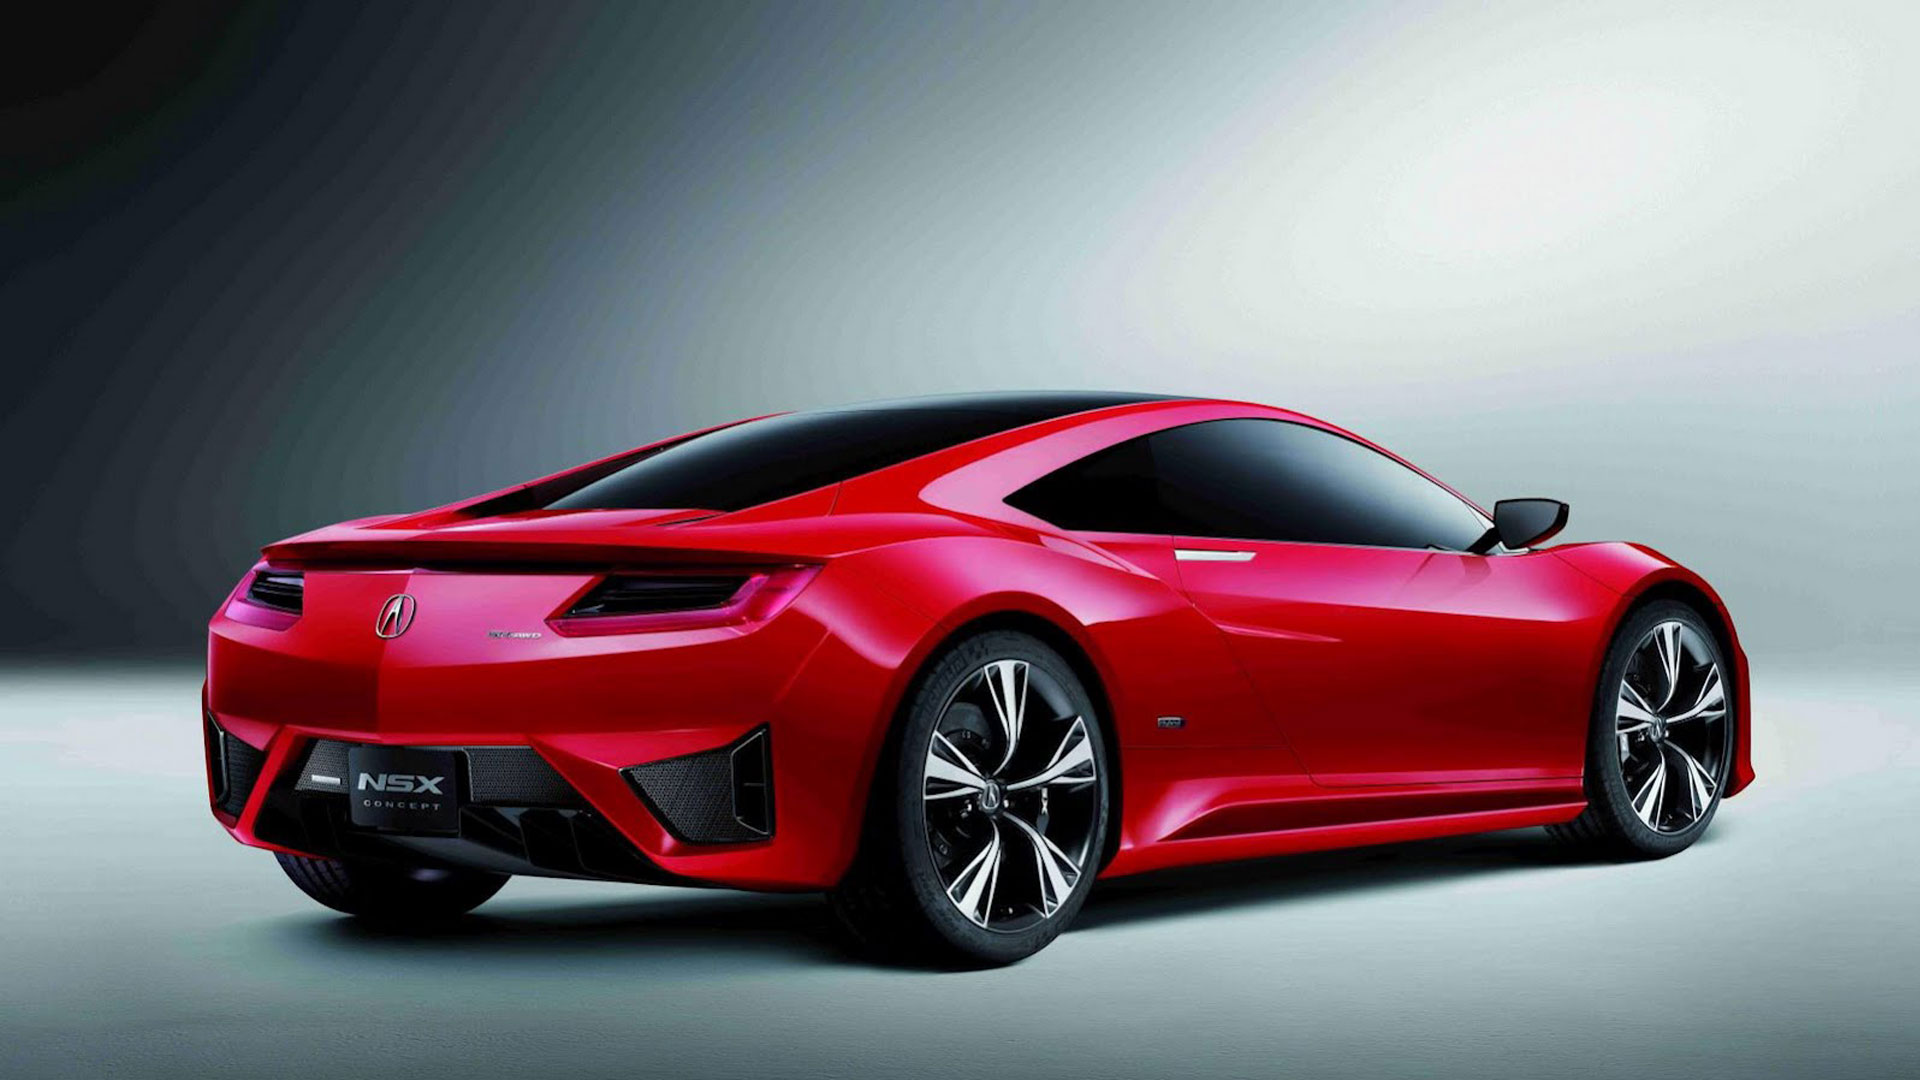 Acura Nsx Wallpaper 19100 Hd Wallpapers 1920x1080